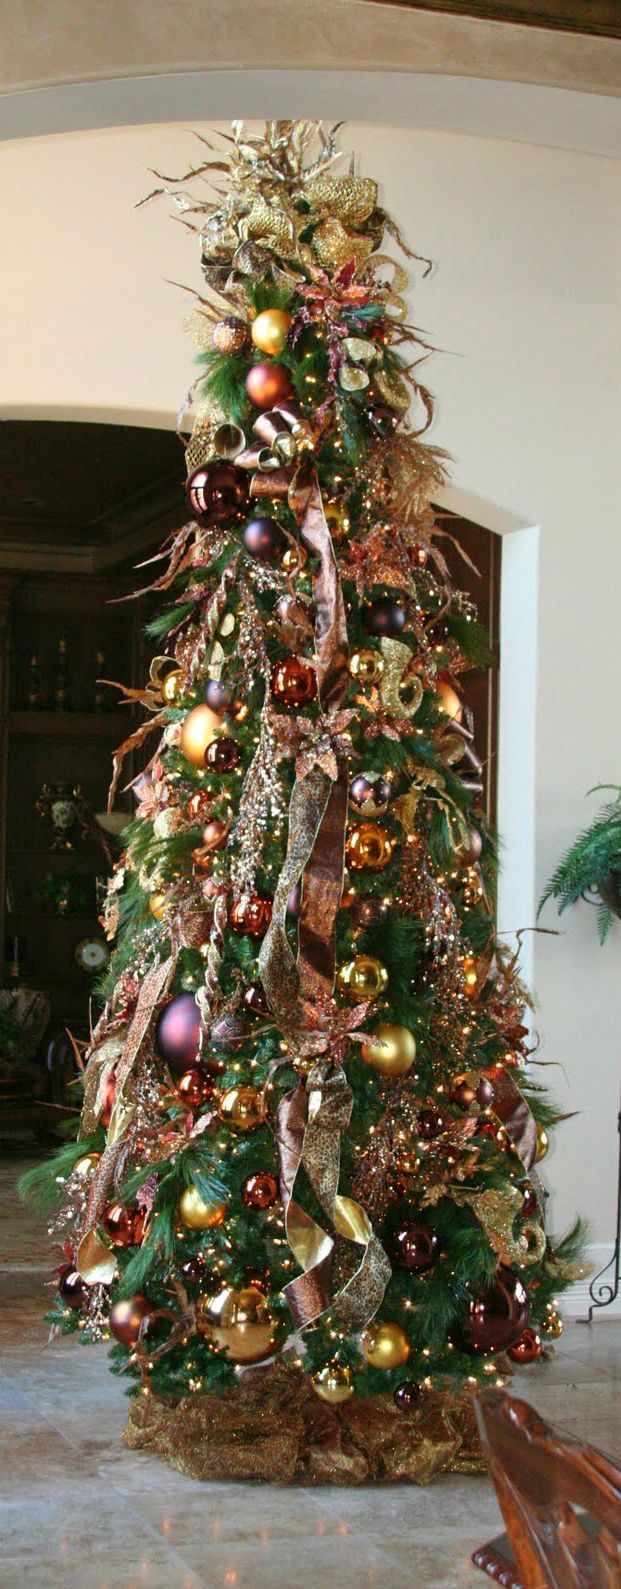 Decorated slim christmas trees ideas - Amazing Decorated Christmas Tree Http Picturingimages Com Amazing Decorated